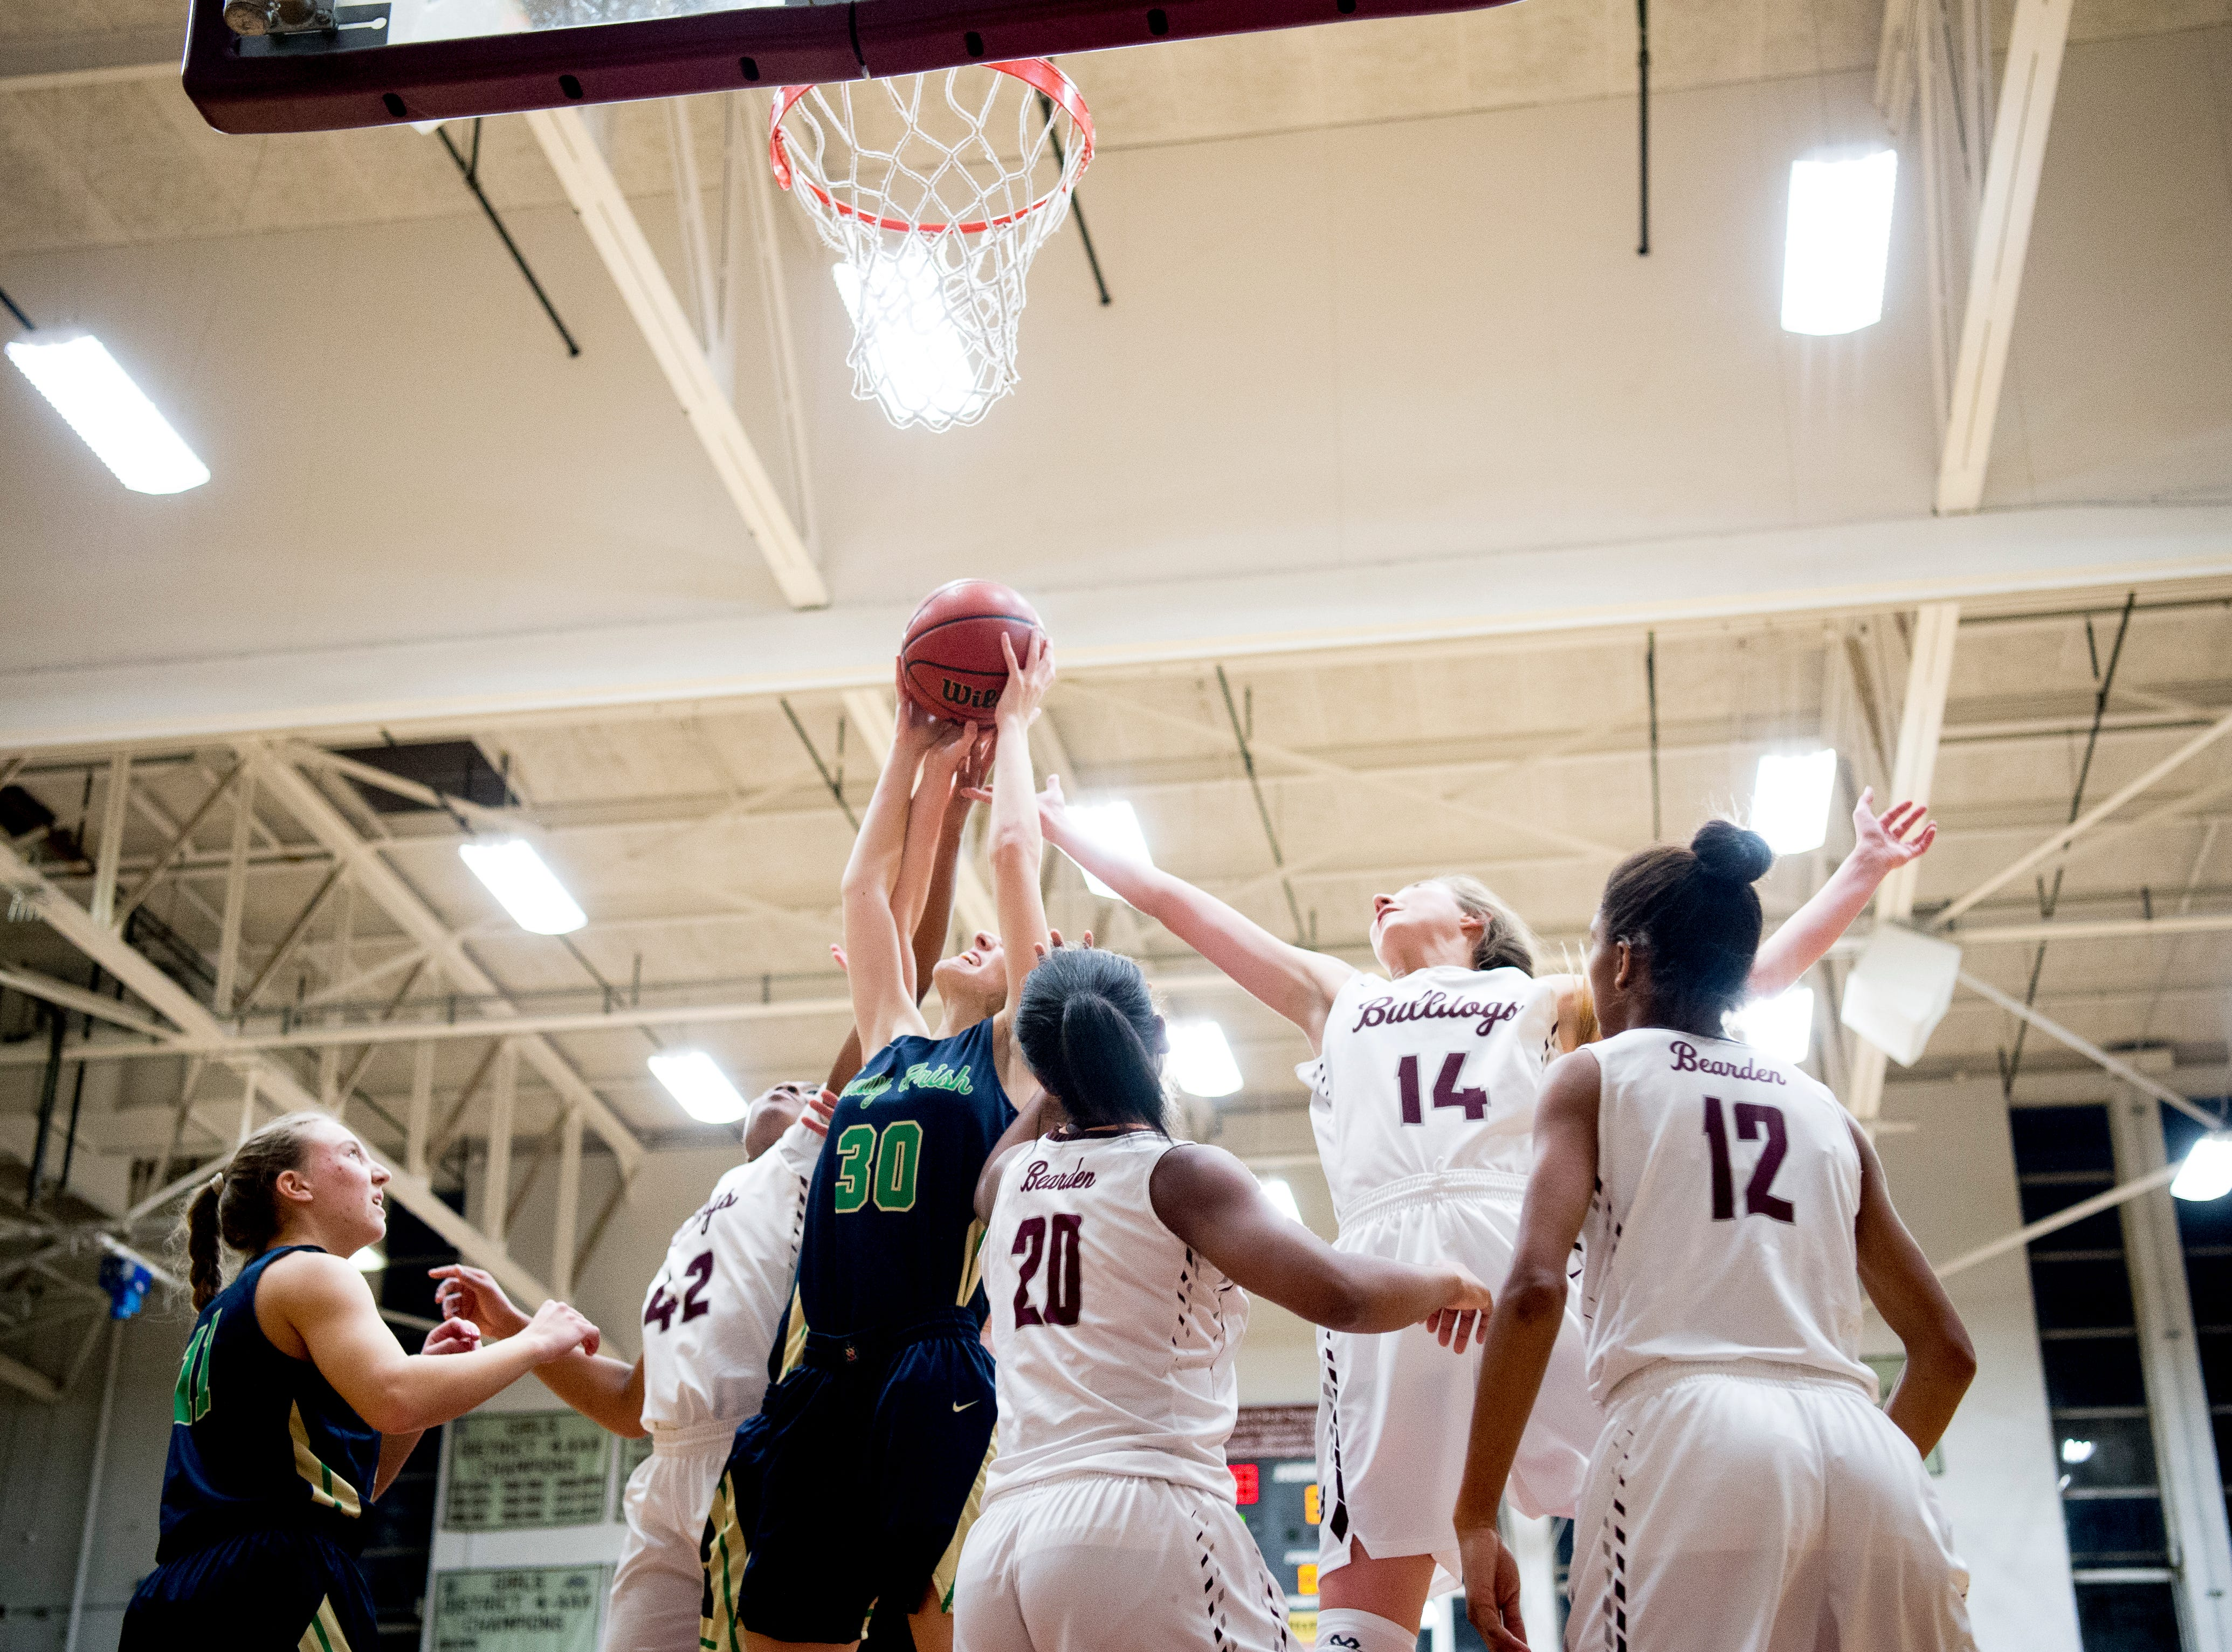 Catholic's Emily Pichiarella (3) grabs the rebound ball as Bearden's Annaka Hall (14) defends during a game between Bearden and Catholic at Bearden High School in Knoxville, Tennessee on Thursday, January 10, 2019.